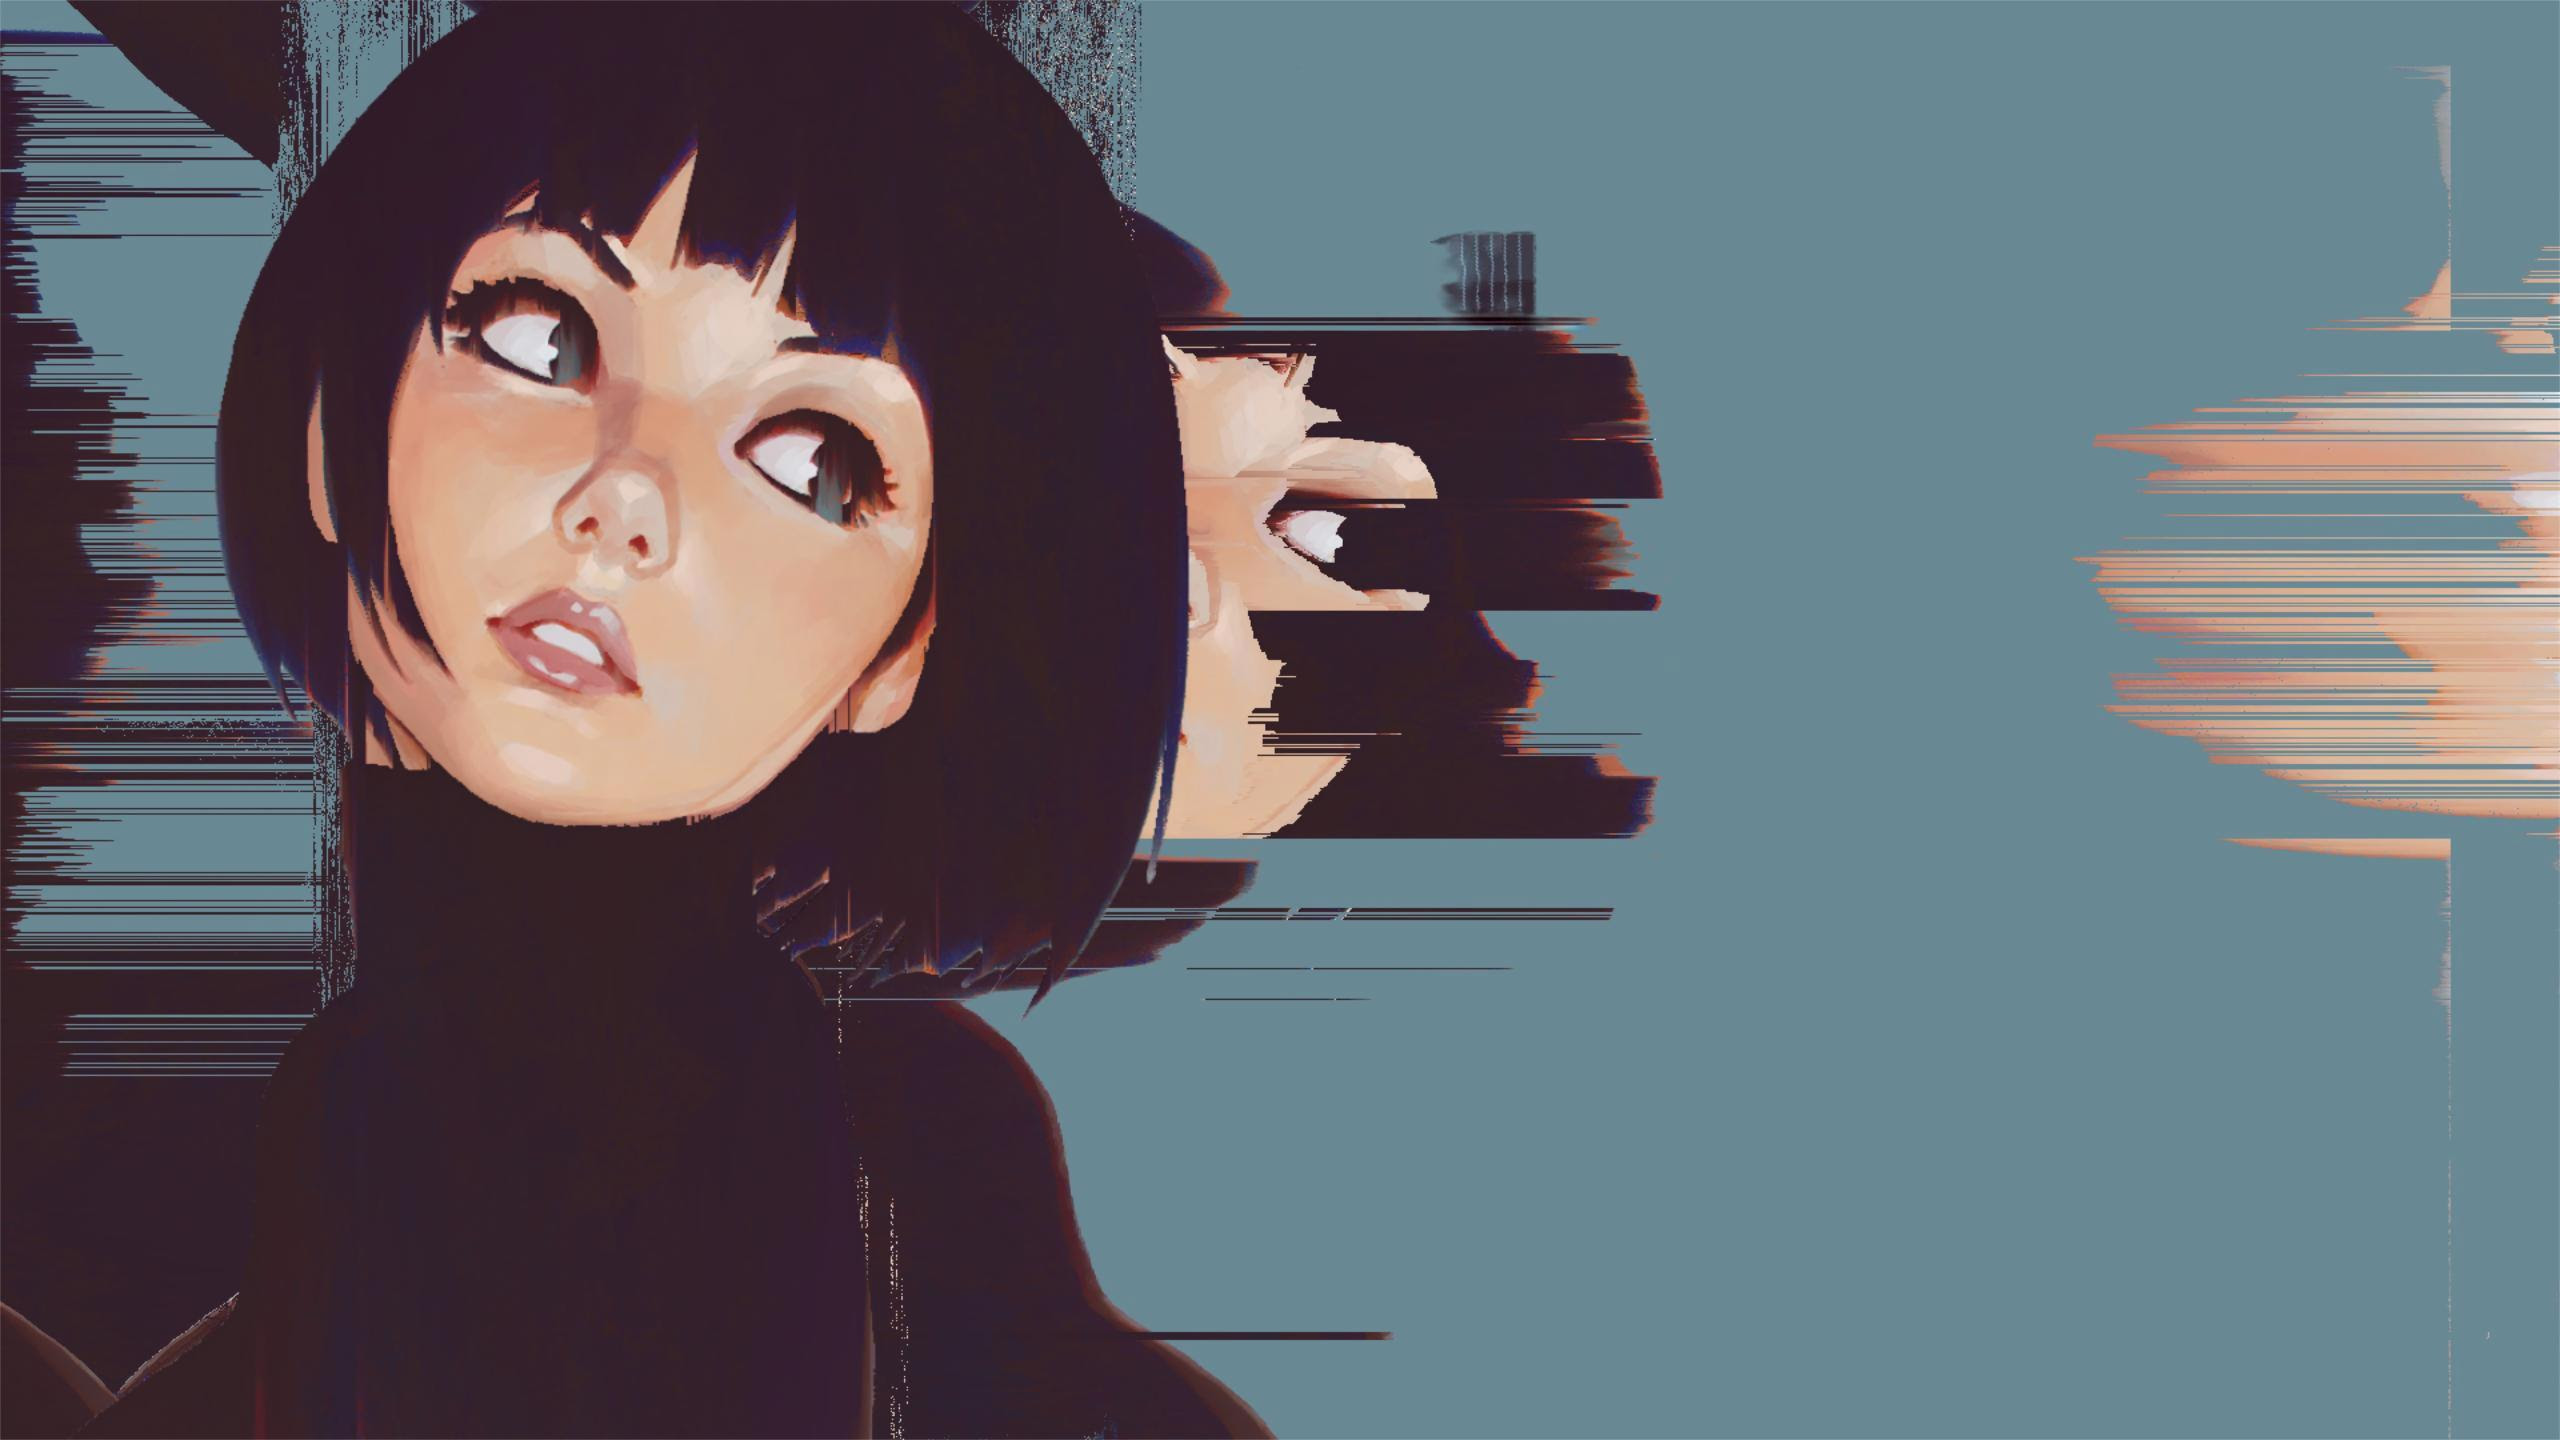 8000+ Wallpaper Anime Glitch Hd  Gratis